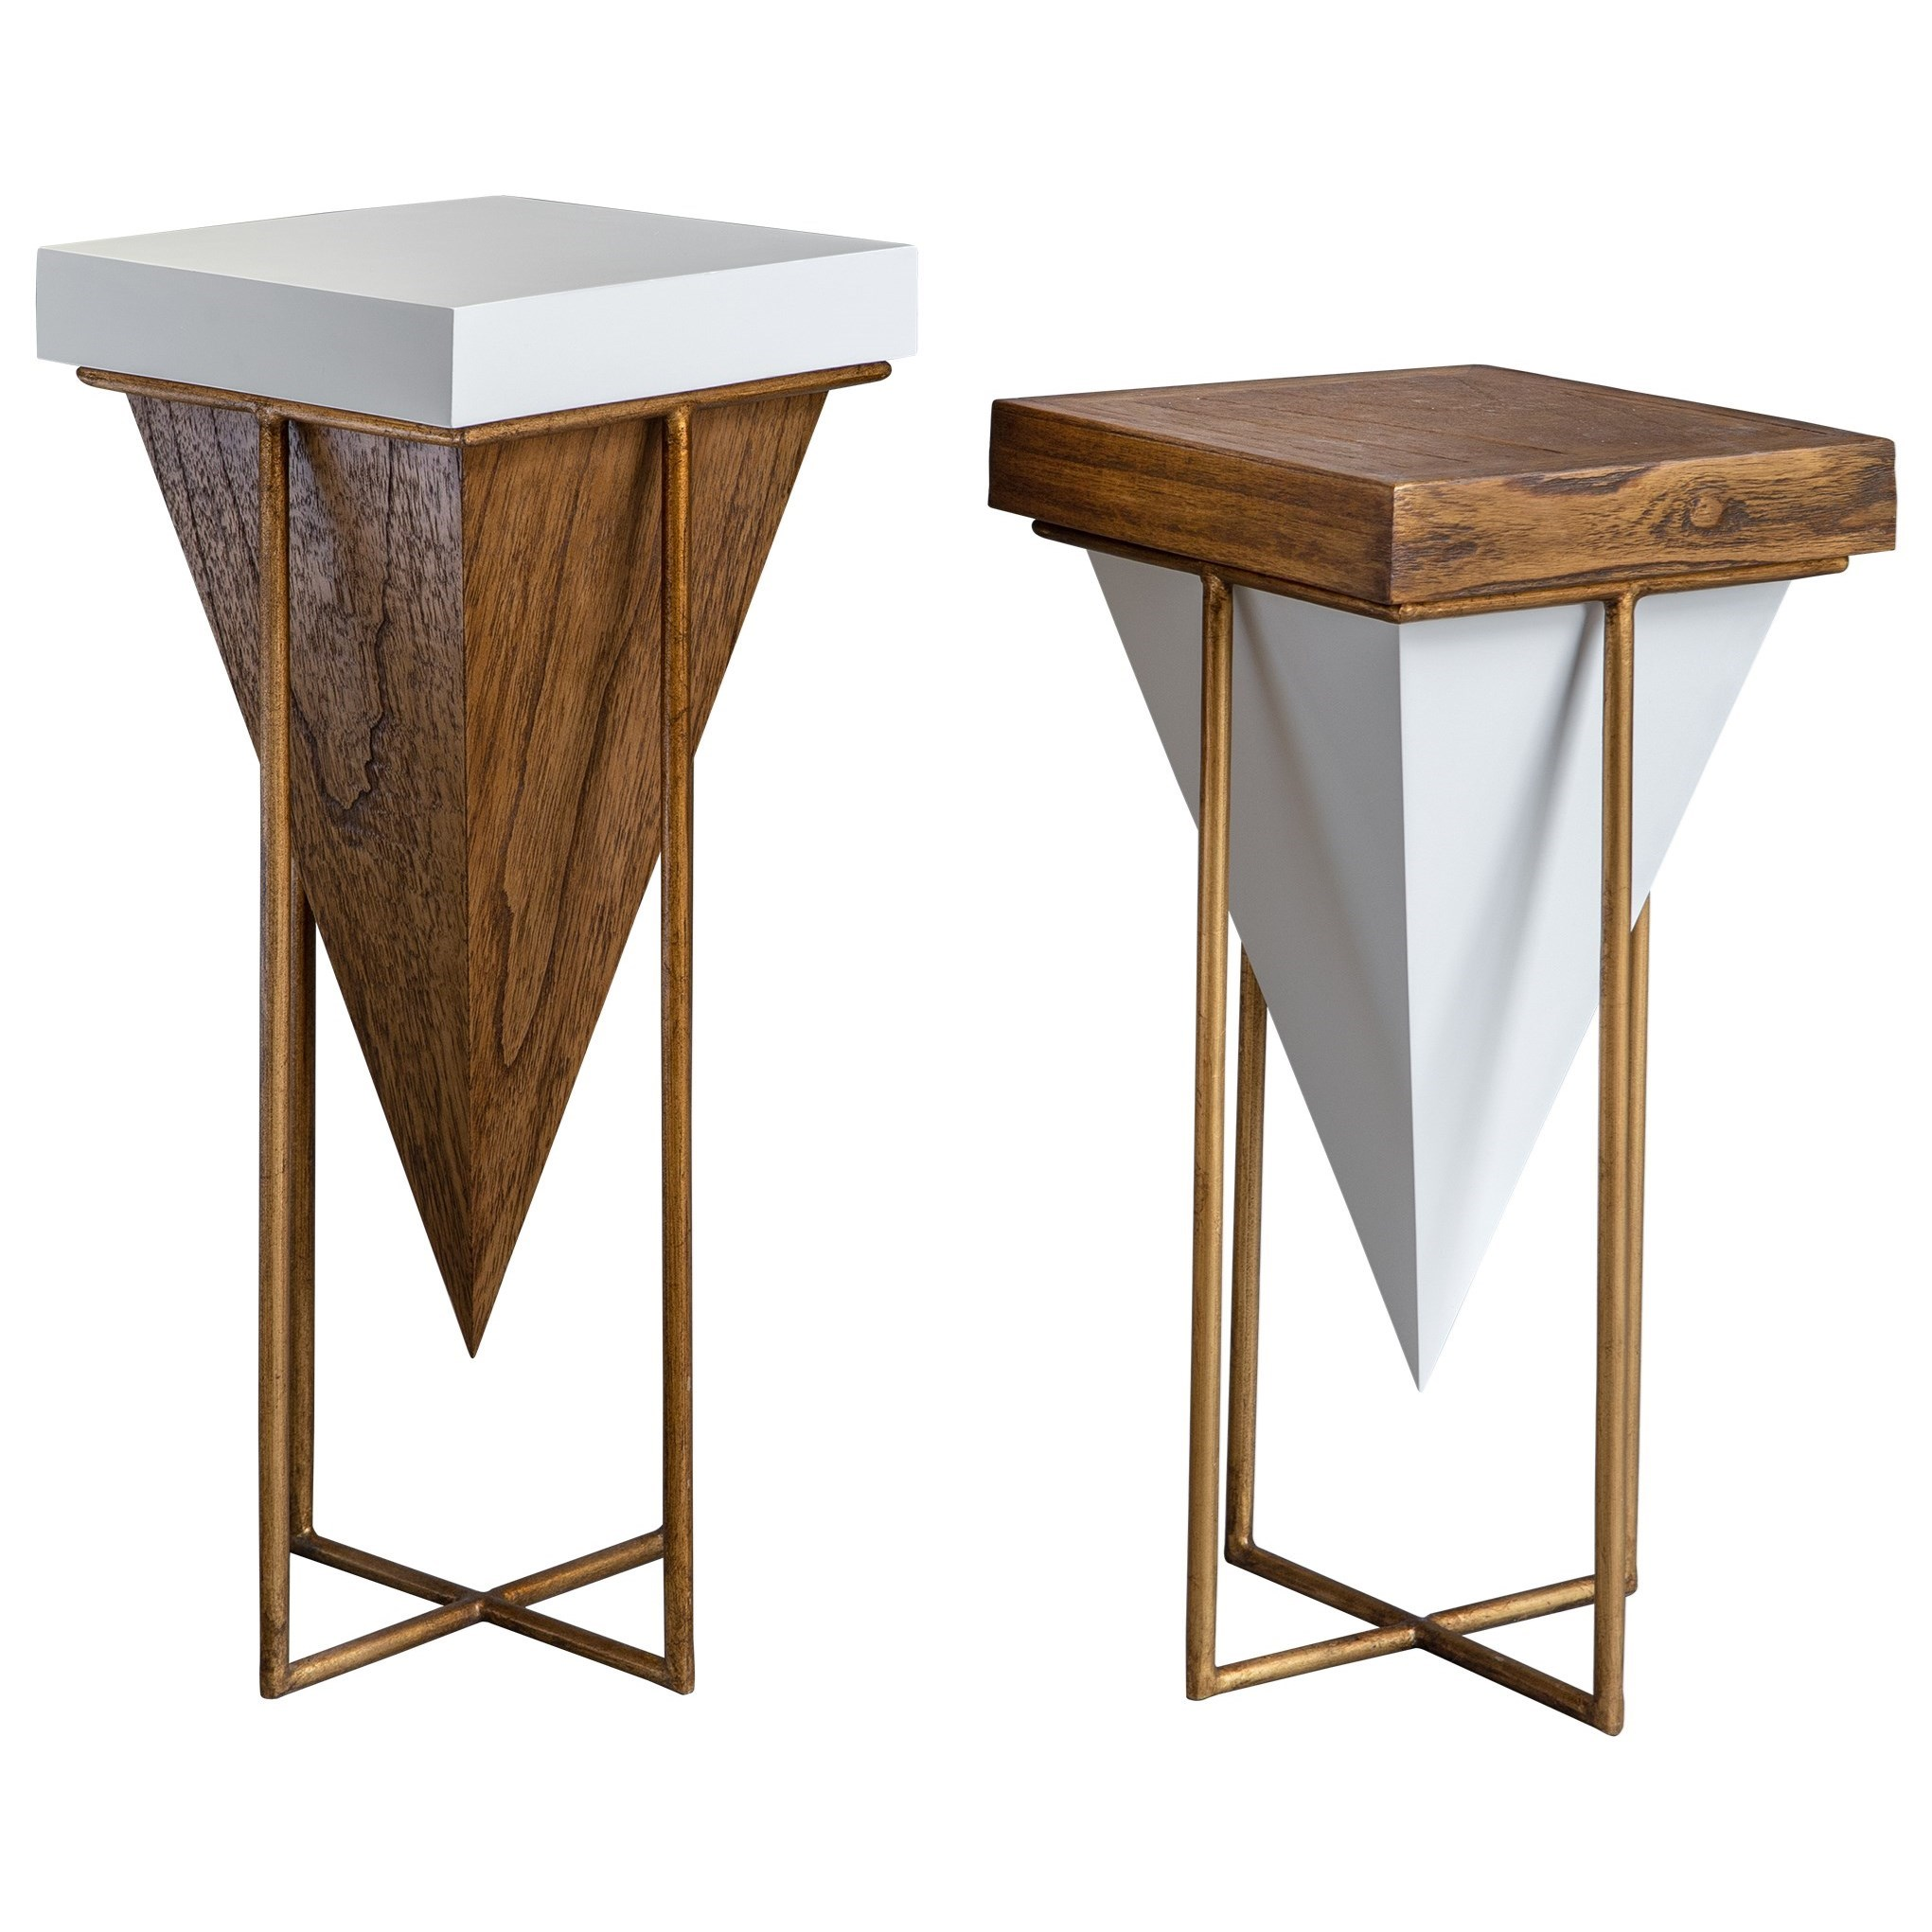 Accent Furniture - Occasional Tables Kanos Accent Tables S/2 by Uttermost at Del Sol Furniture